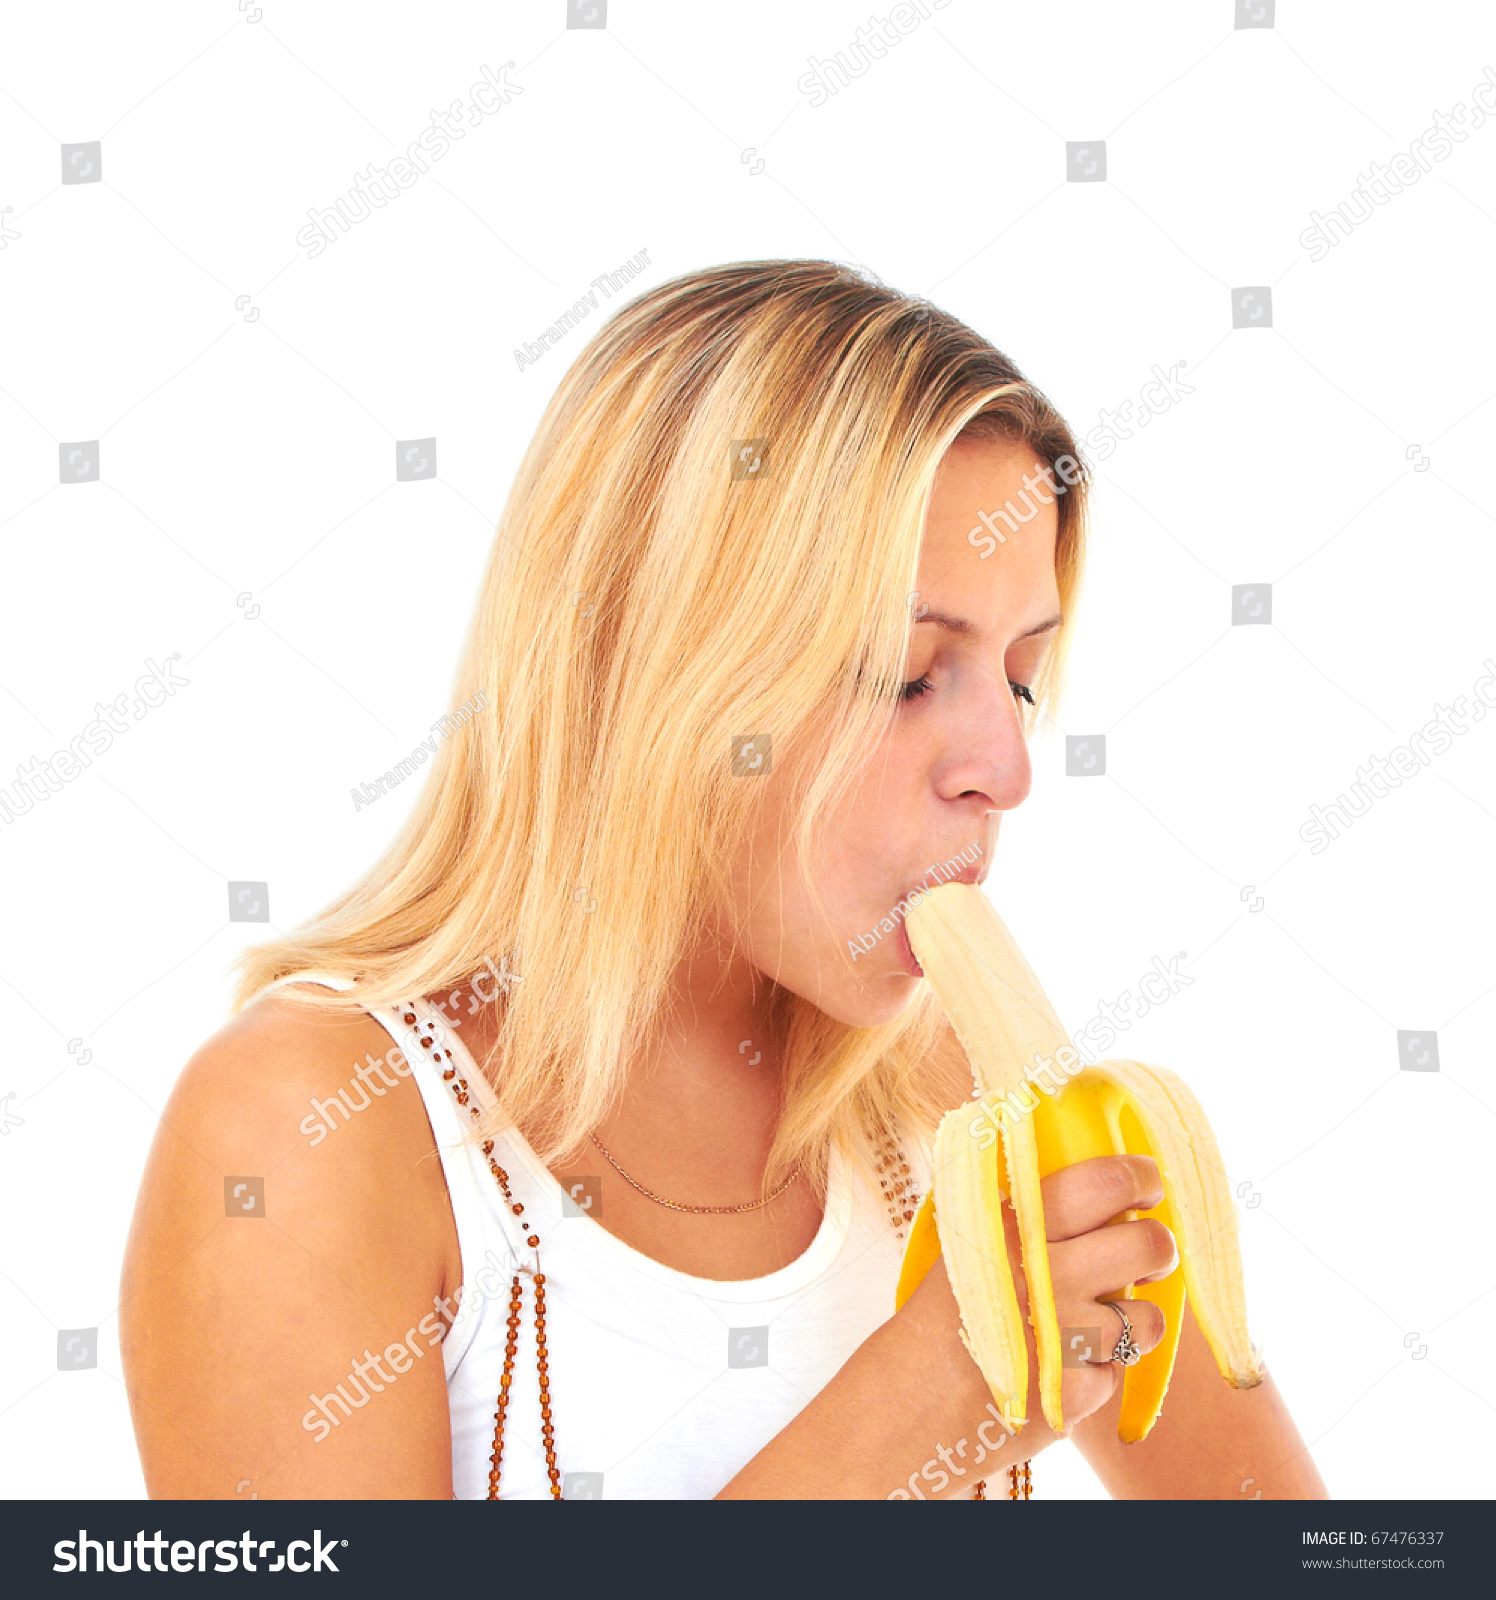 girls eating bannana